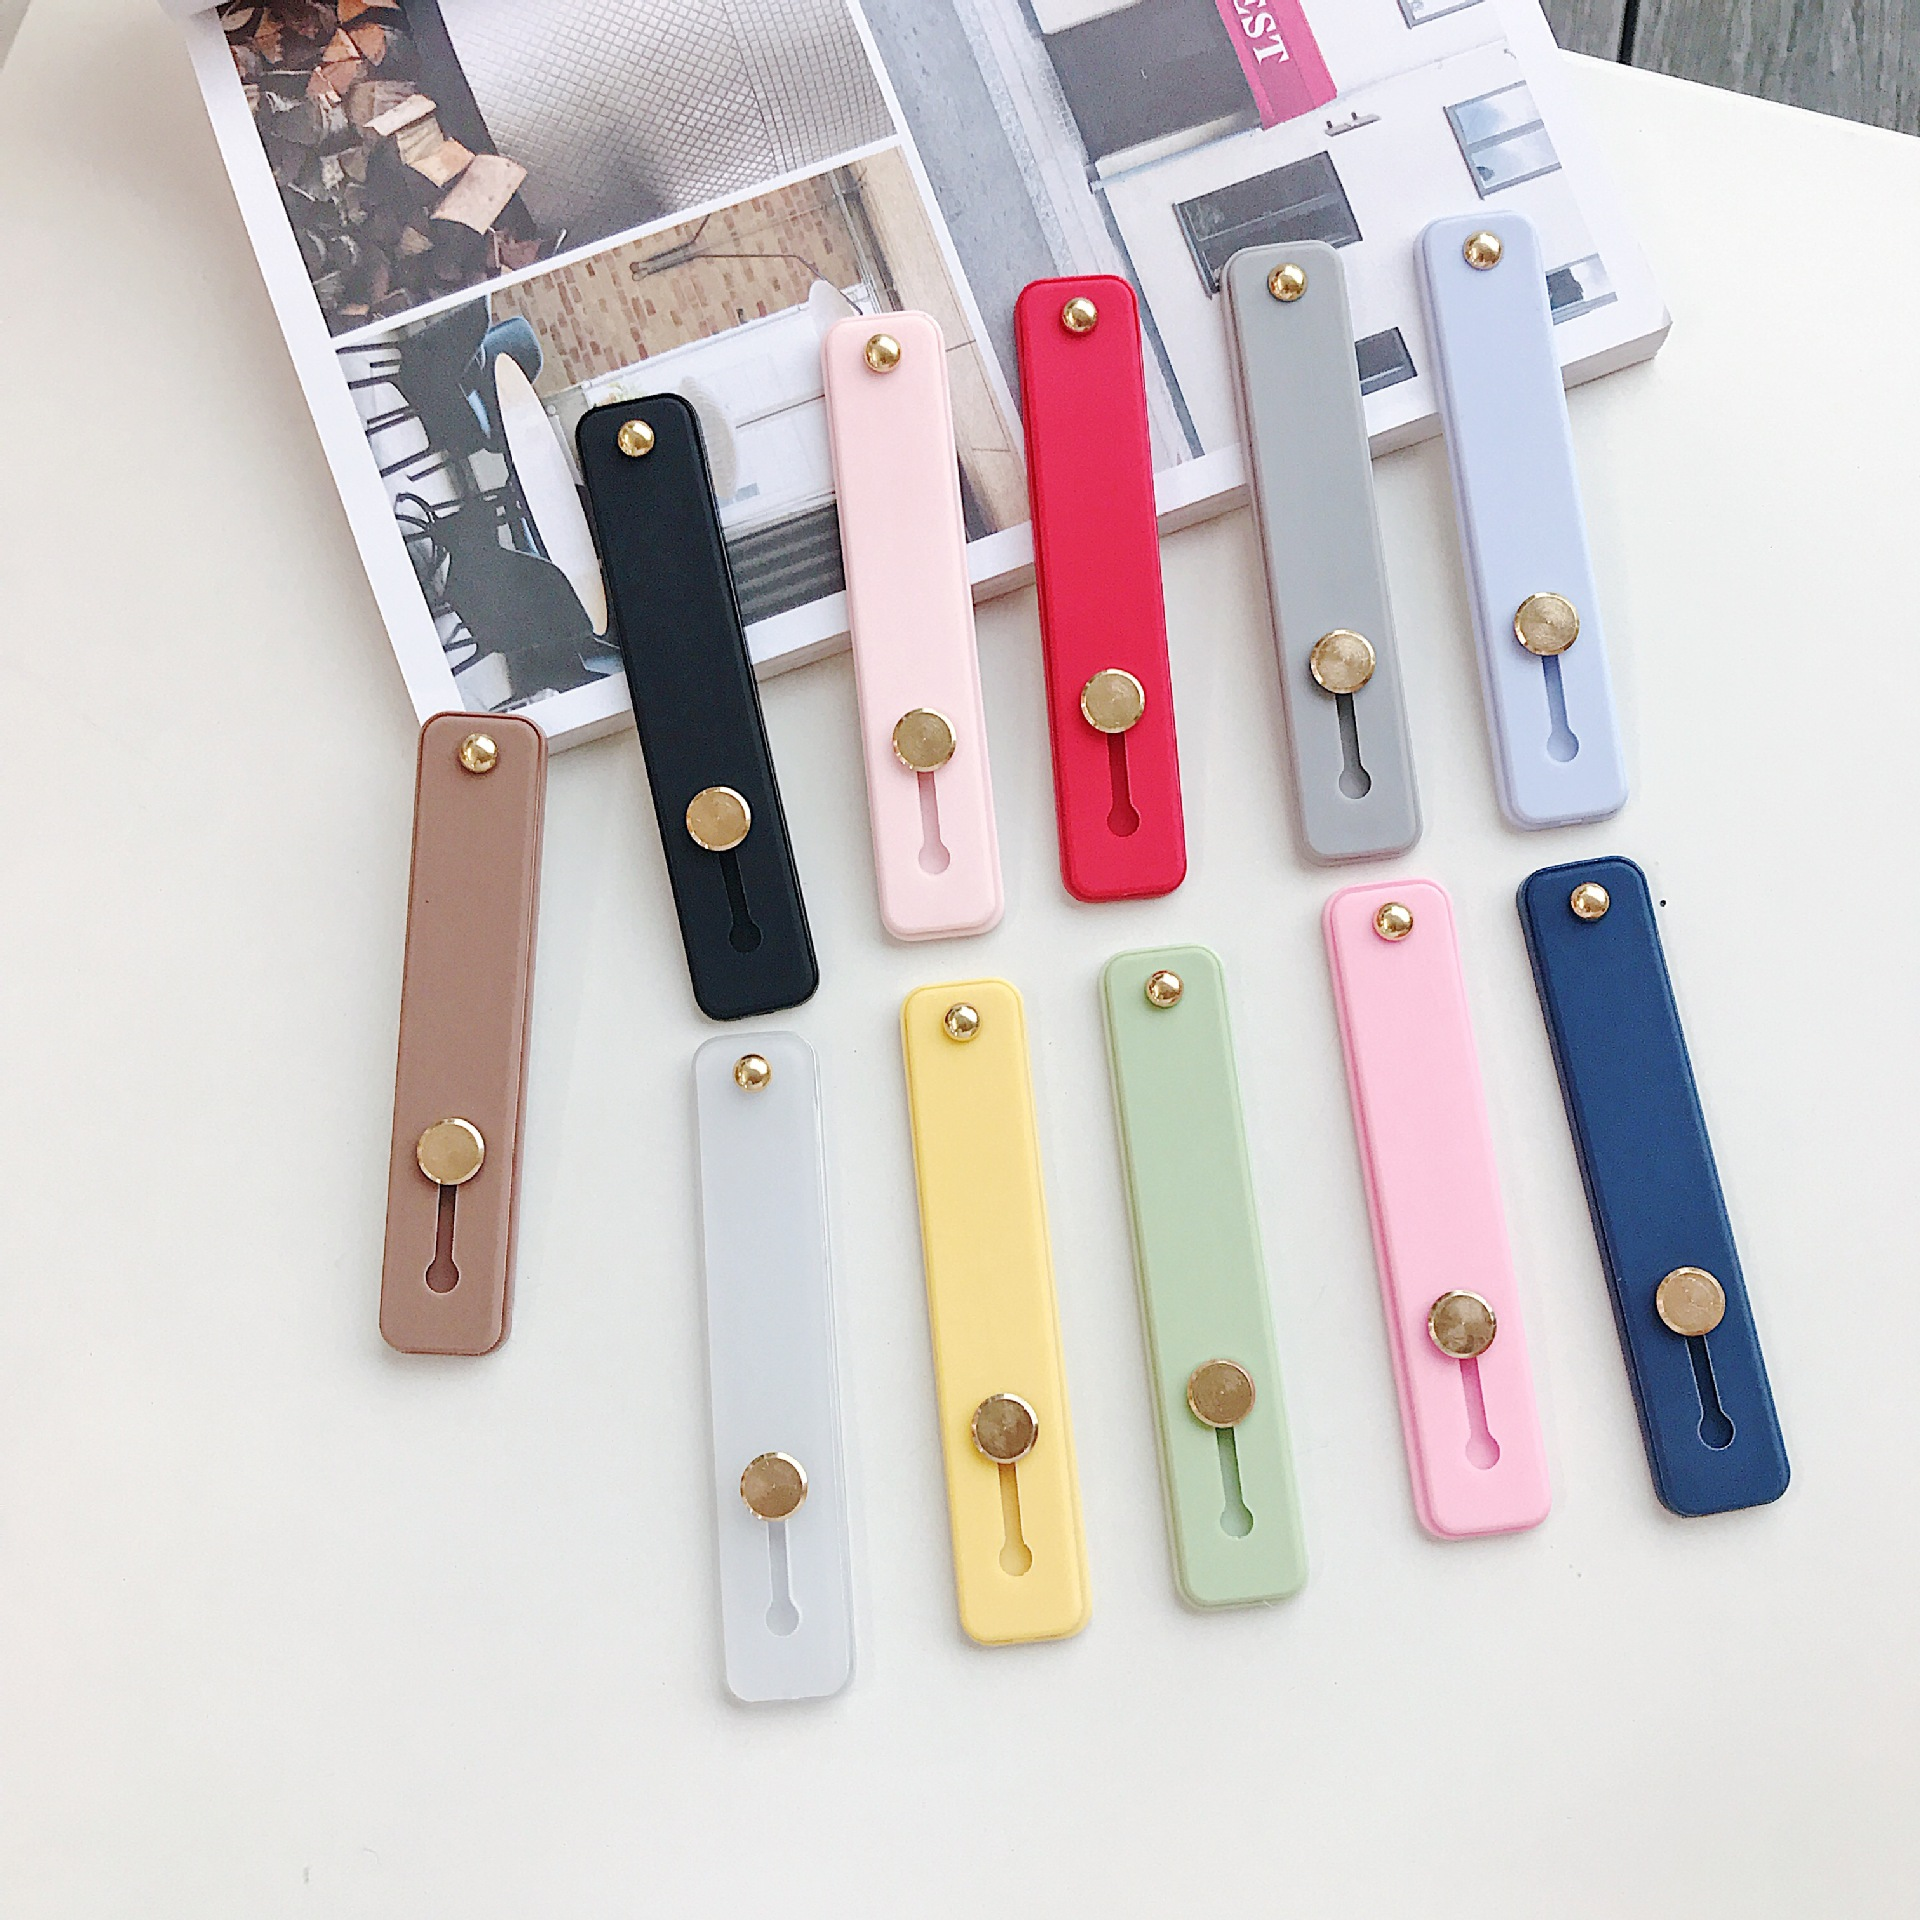 Plain Color Wrist Band Hand Band Finger Grip Mobile Phone Holder Stand Push Pull Universal Phone Socket Holder For Iphone X Xr 7